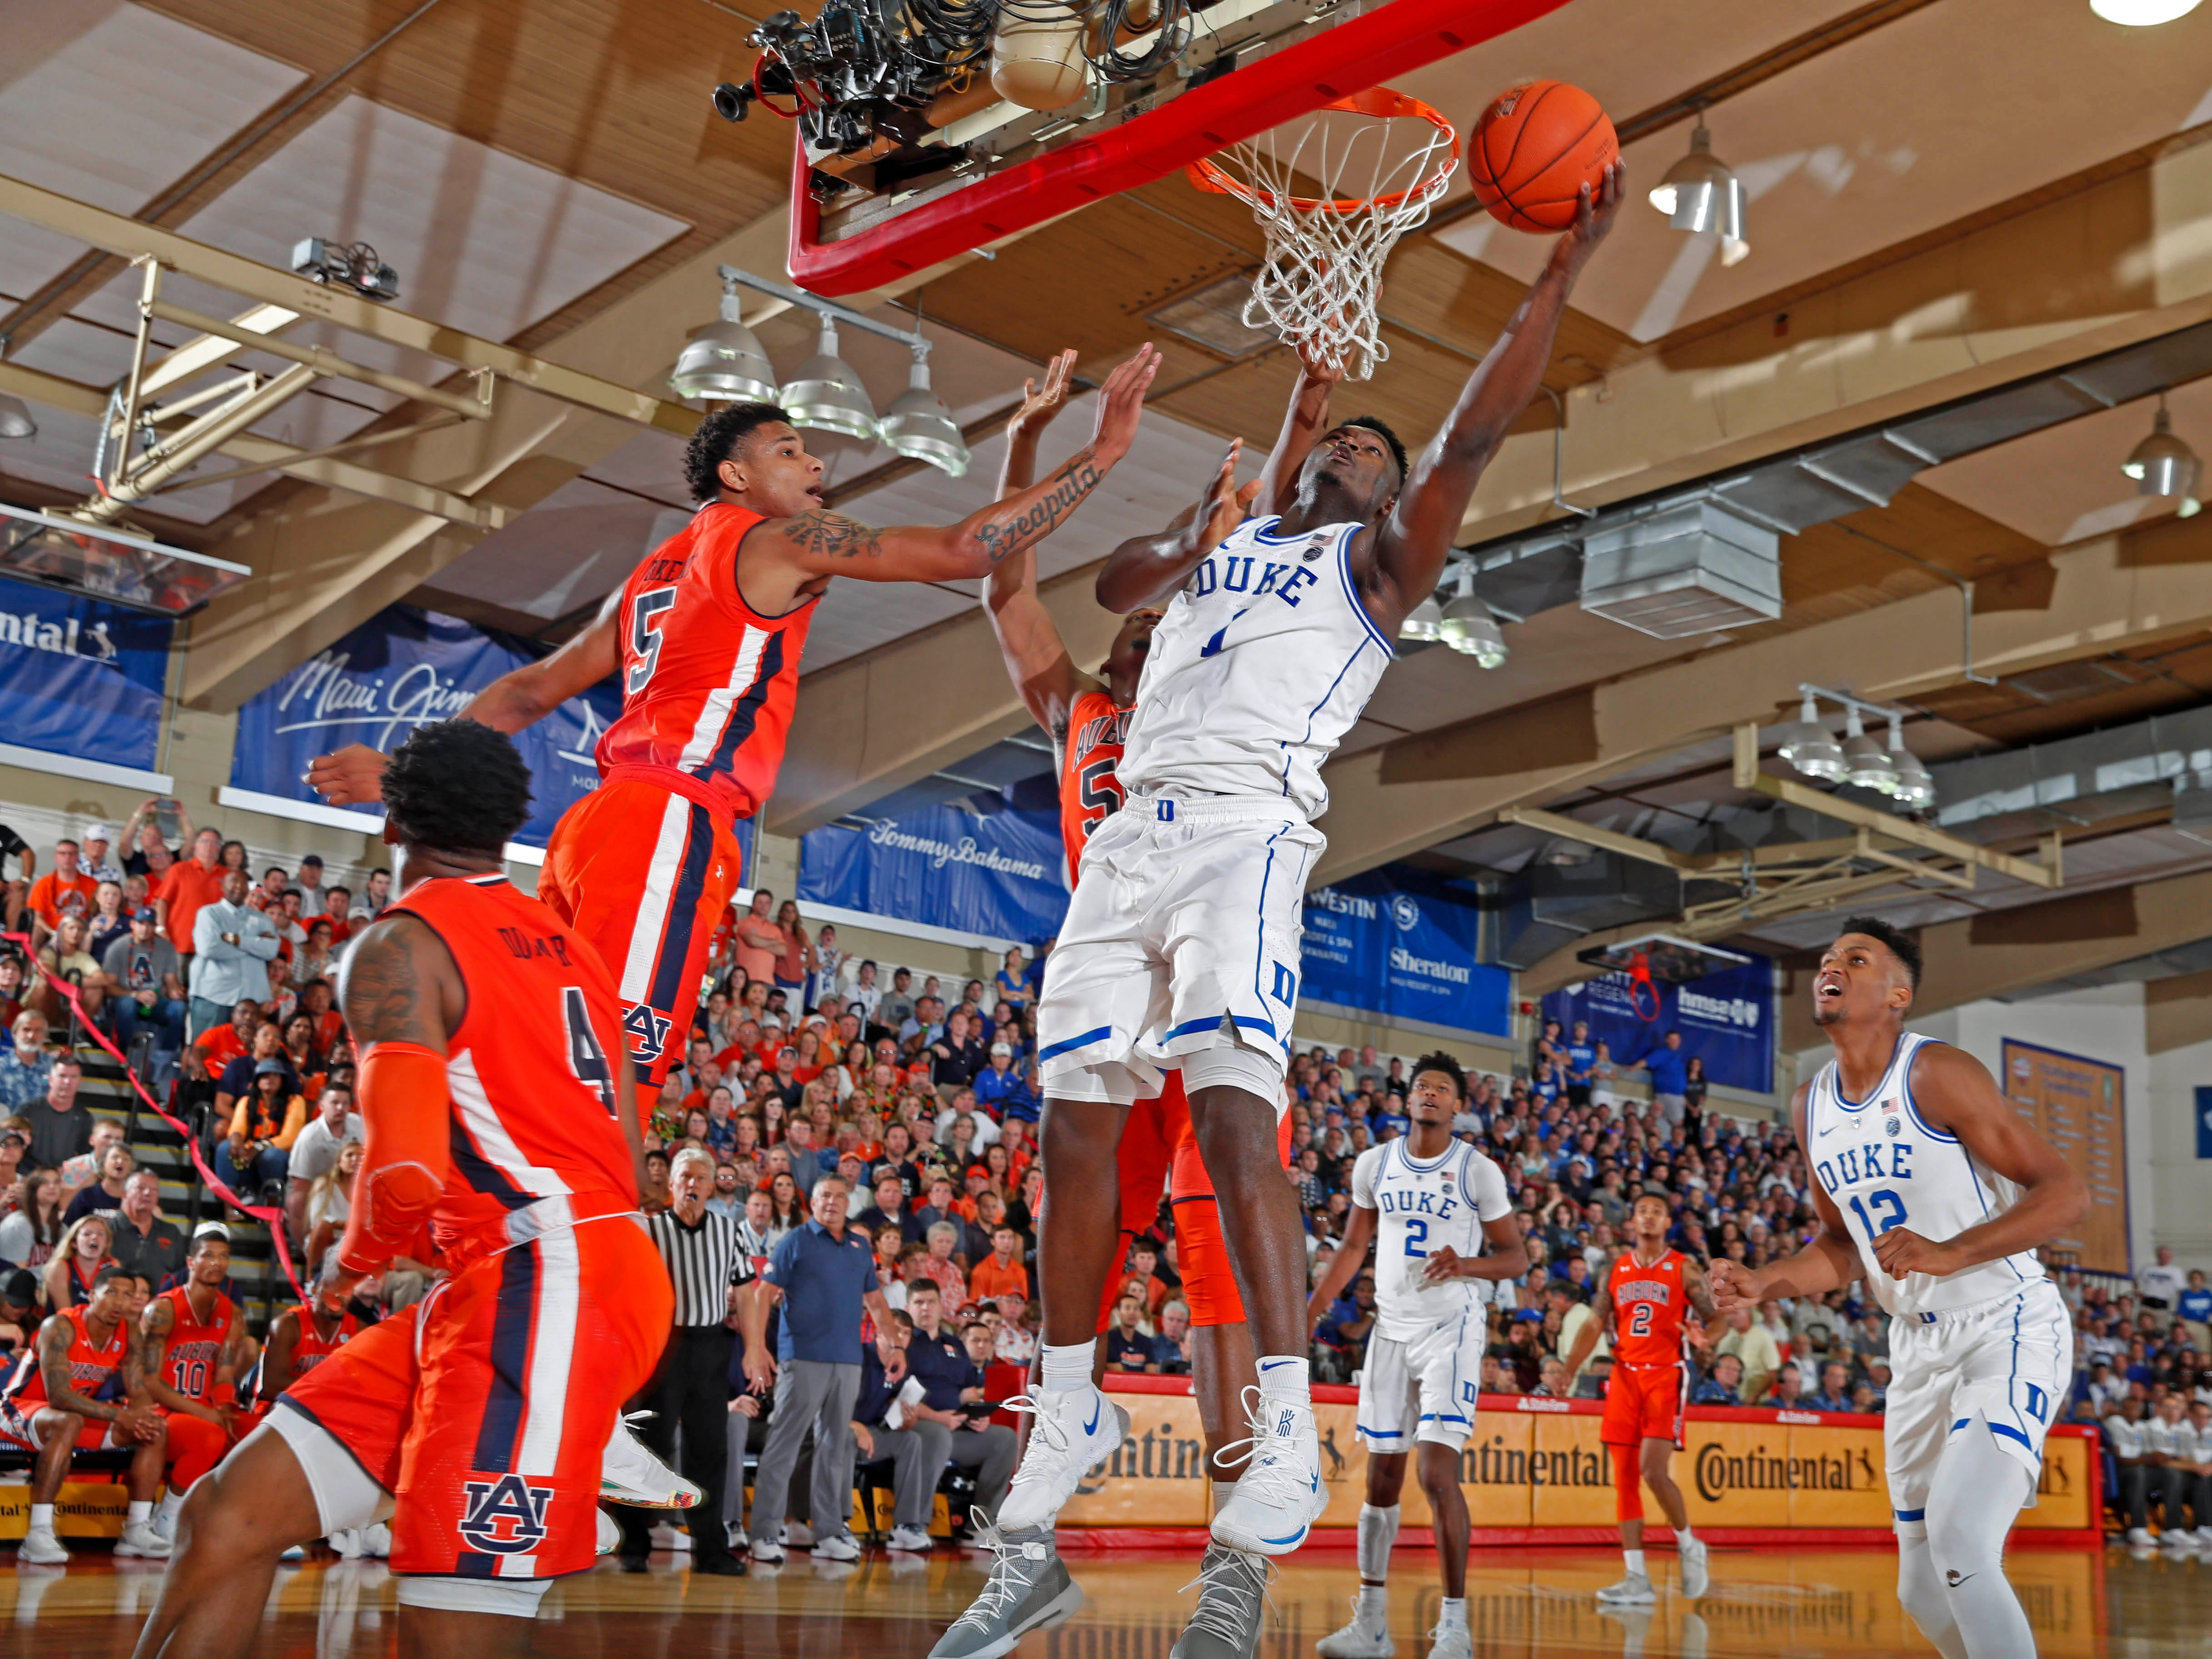 Duke Blue Devils forward Zion Williamson (1) takes a shot against Auburn in the first half during the second round of the Maui Invitational at Lahaina Civic Center.